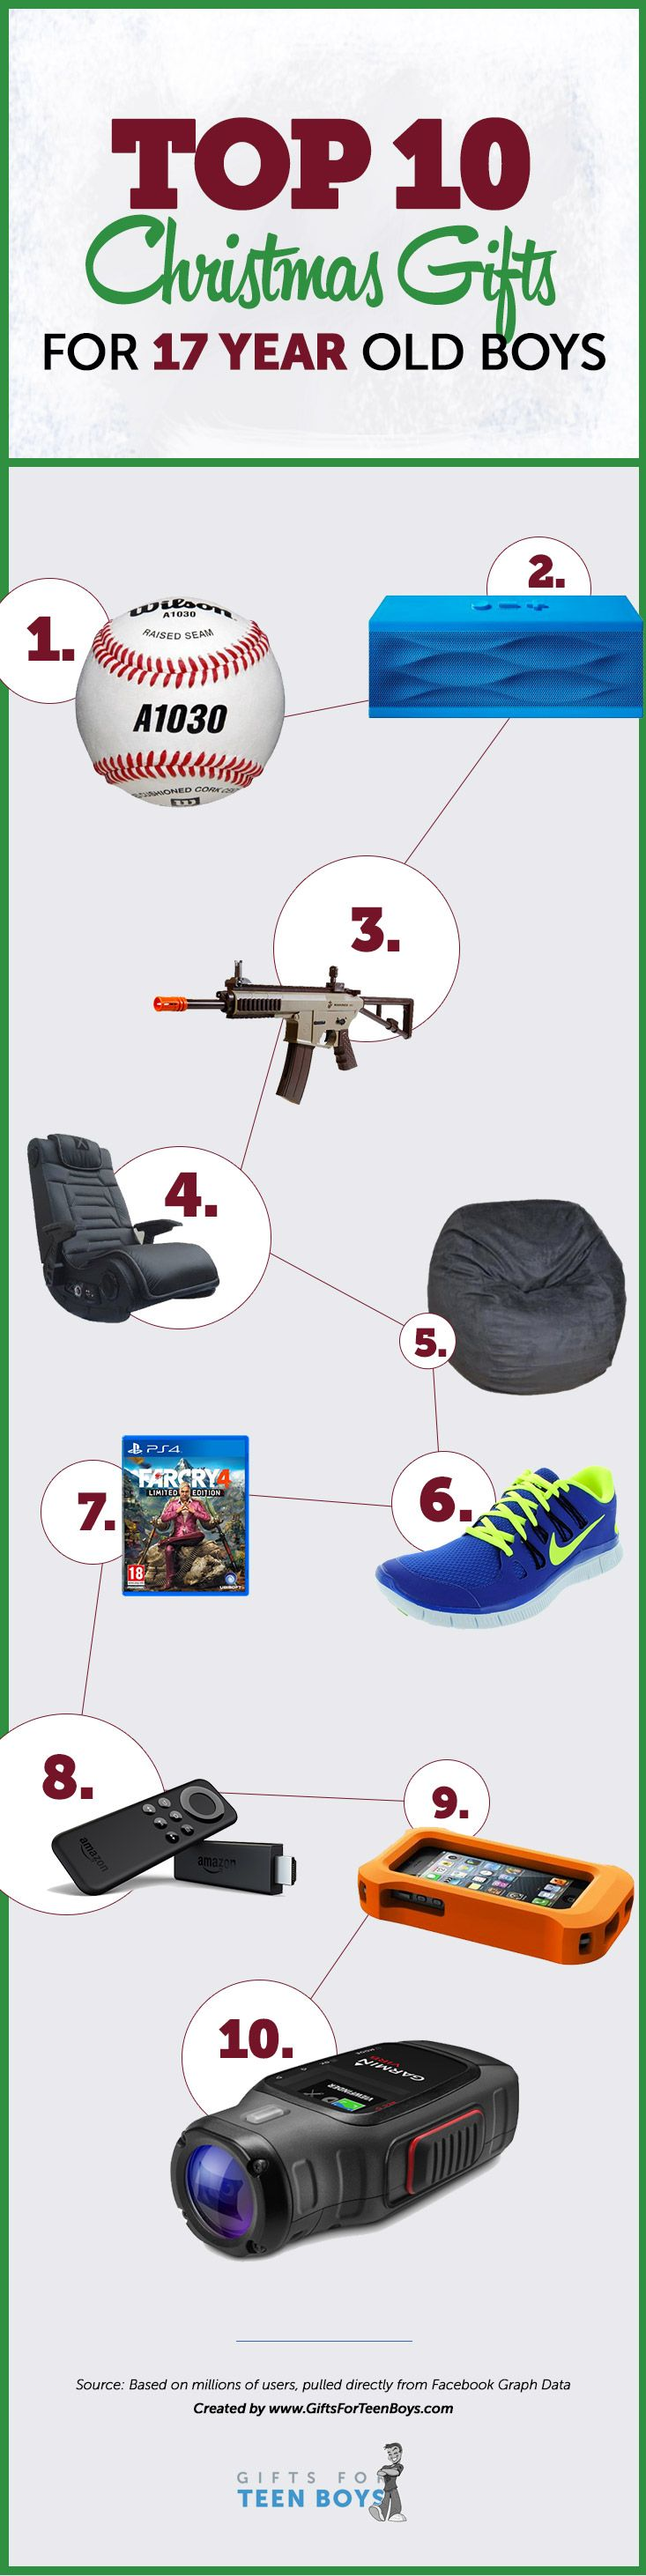 Top 10 Christmas Gifts for 17 year old Teen Boys